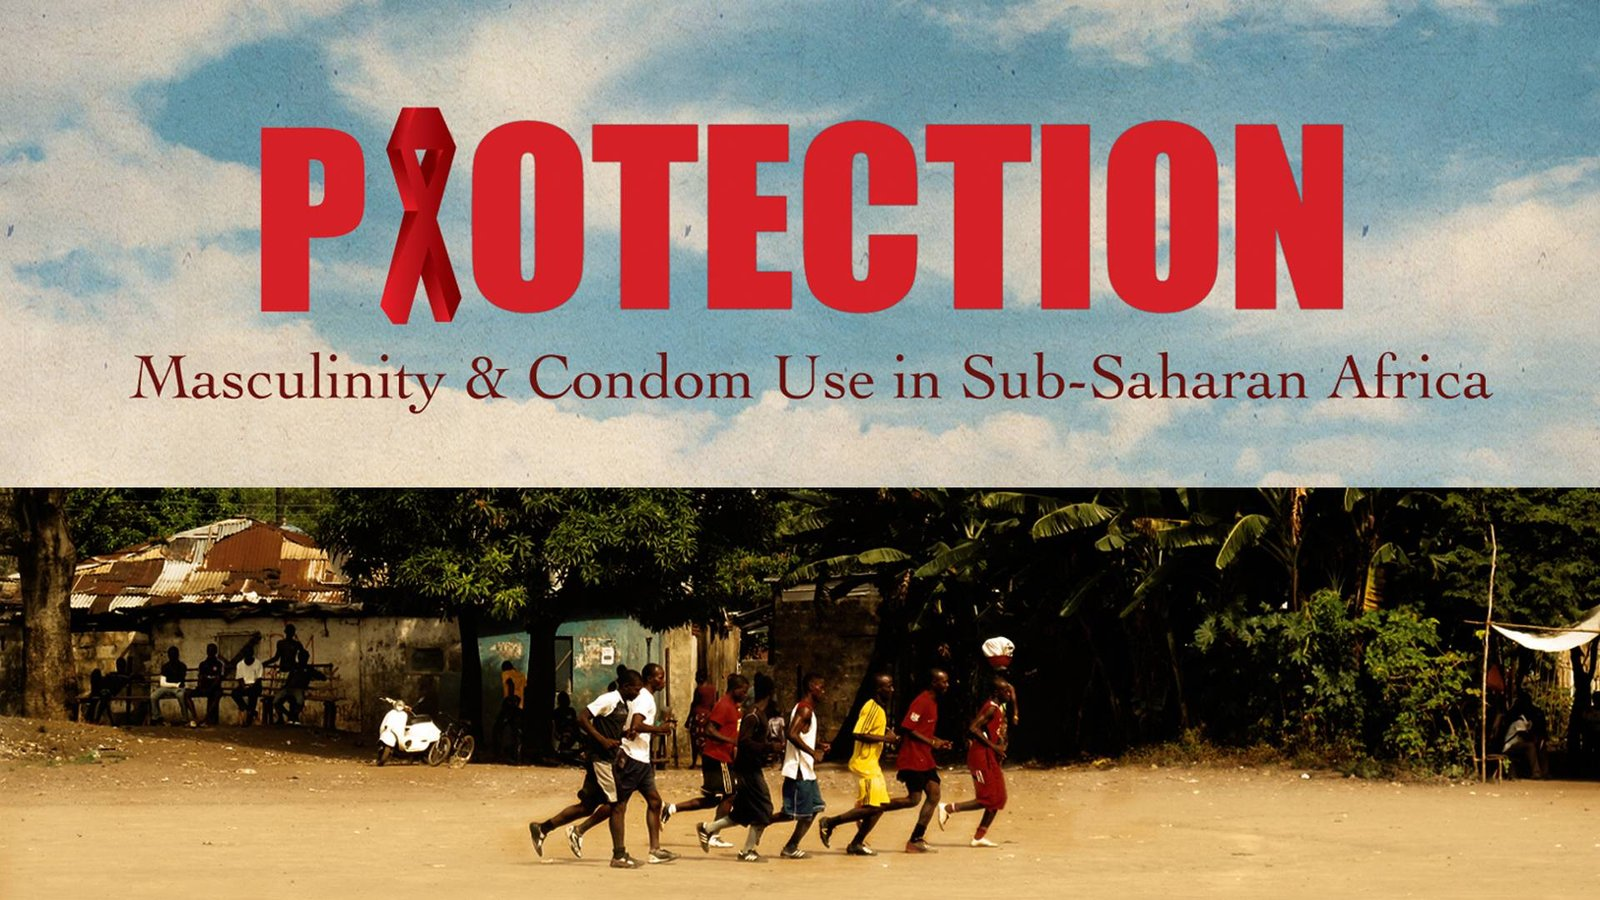 Protection: Masculinity & Condom Use in Sub-Saharan Africa